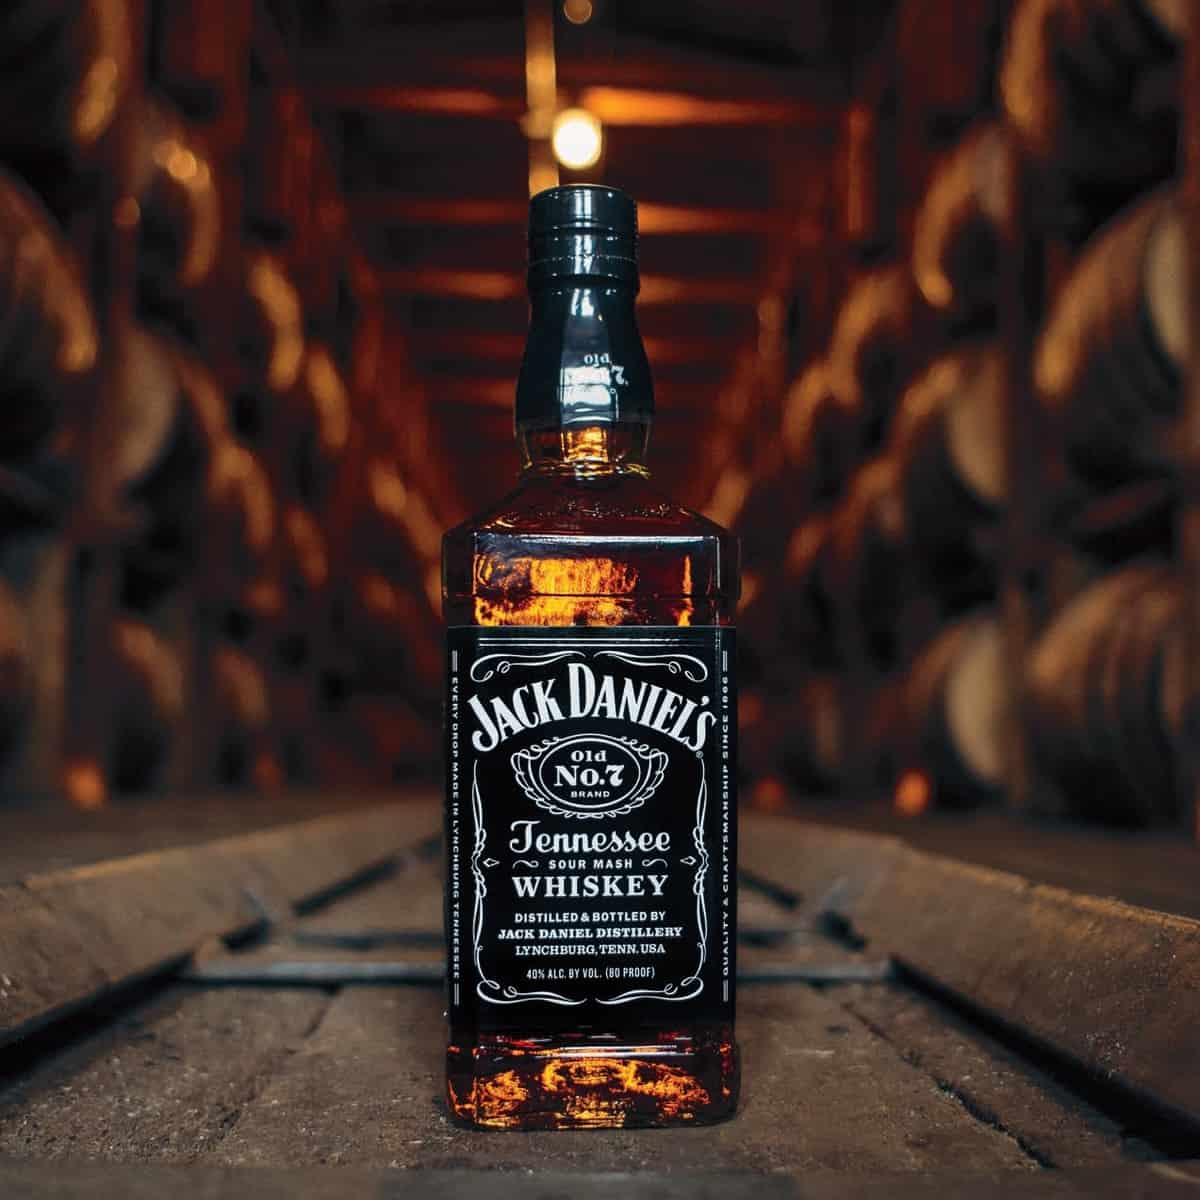 Jack Daniel's Old No.7 Tennessee Whiskey